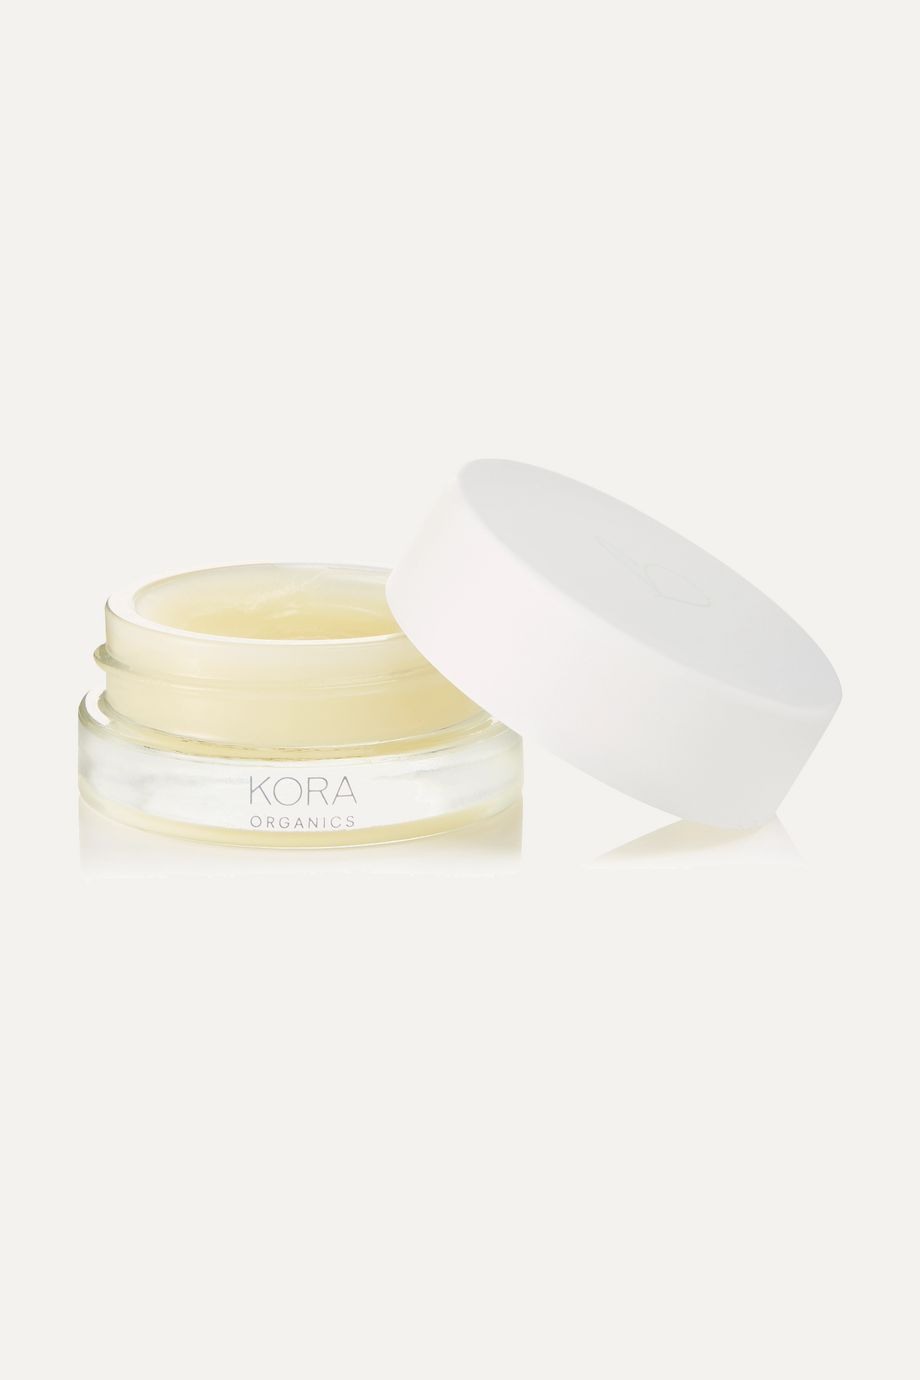 KORA Organics Noni Lip Treatment, 6g